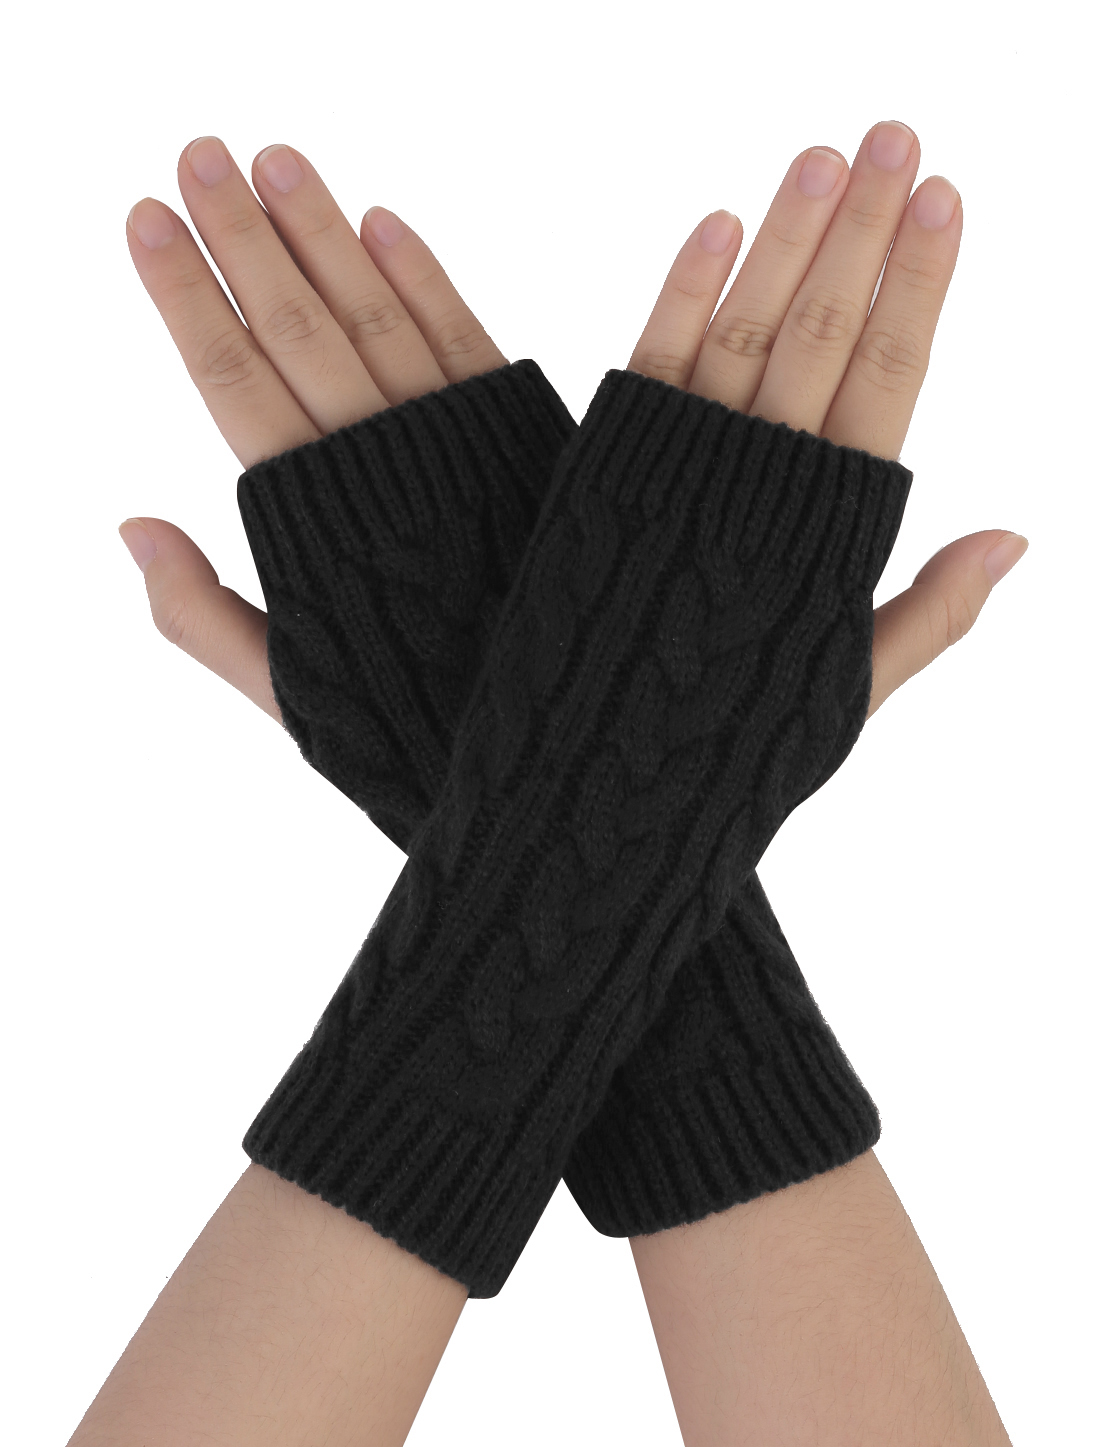 Unisex Black Stretchy Thumb Hole Detail Casual Warmer Knit Gloves